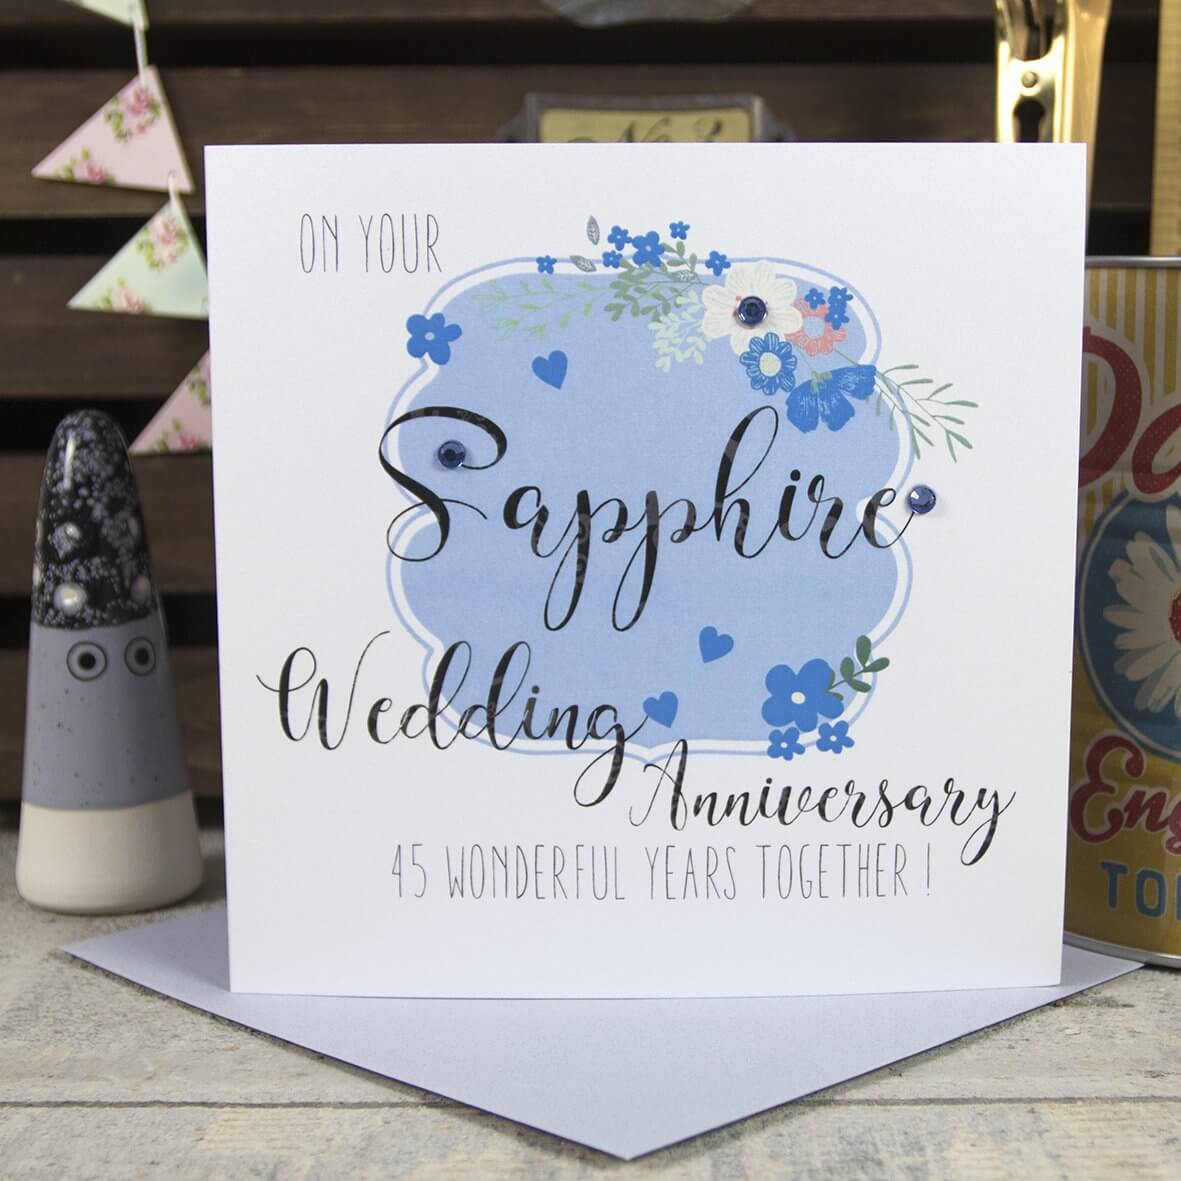 On your Sapphire Wedding Anniversary 45 wonderful years together!